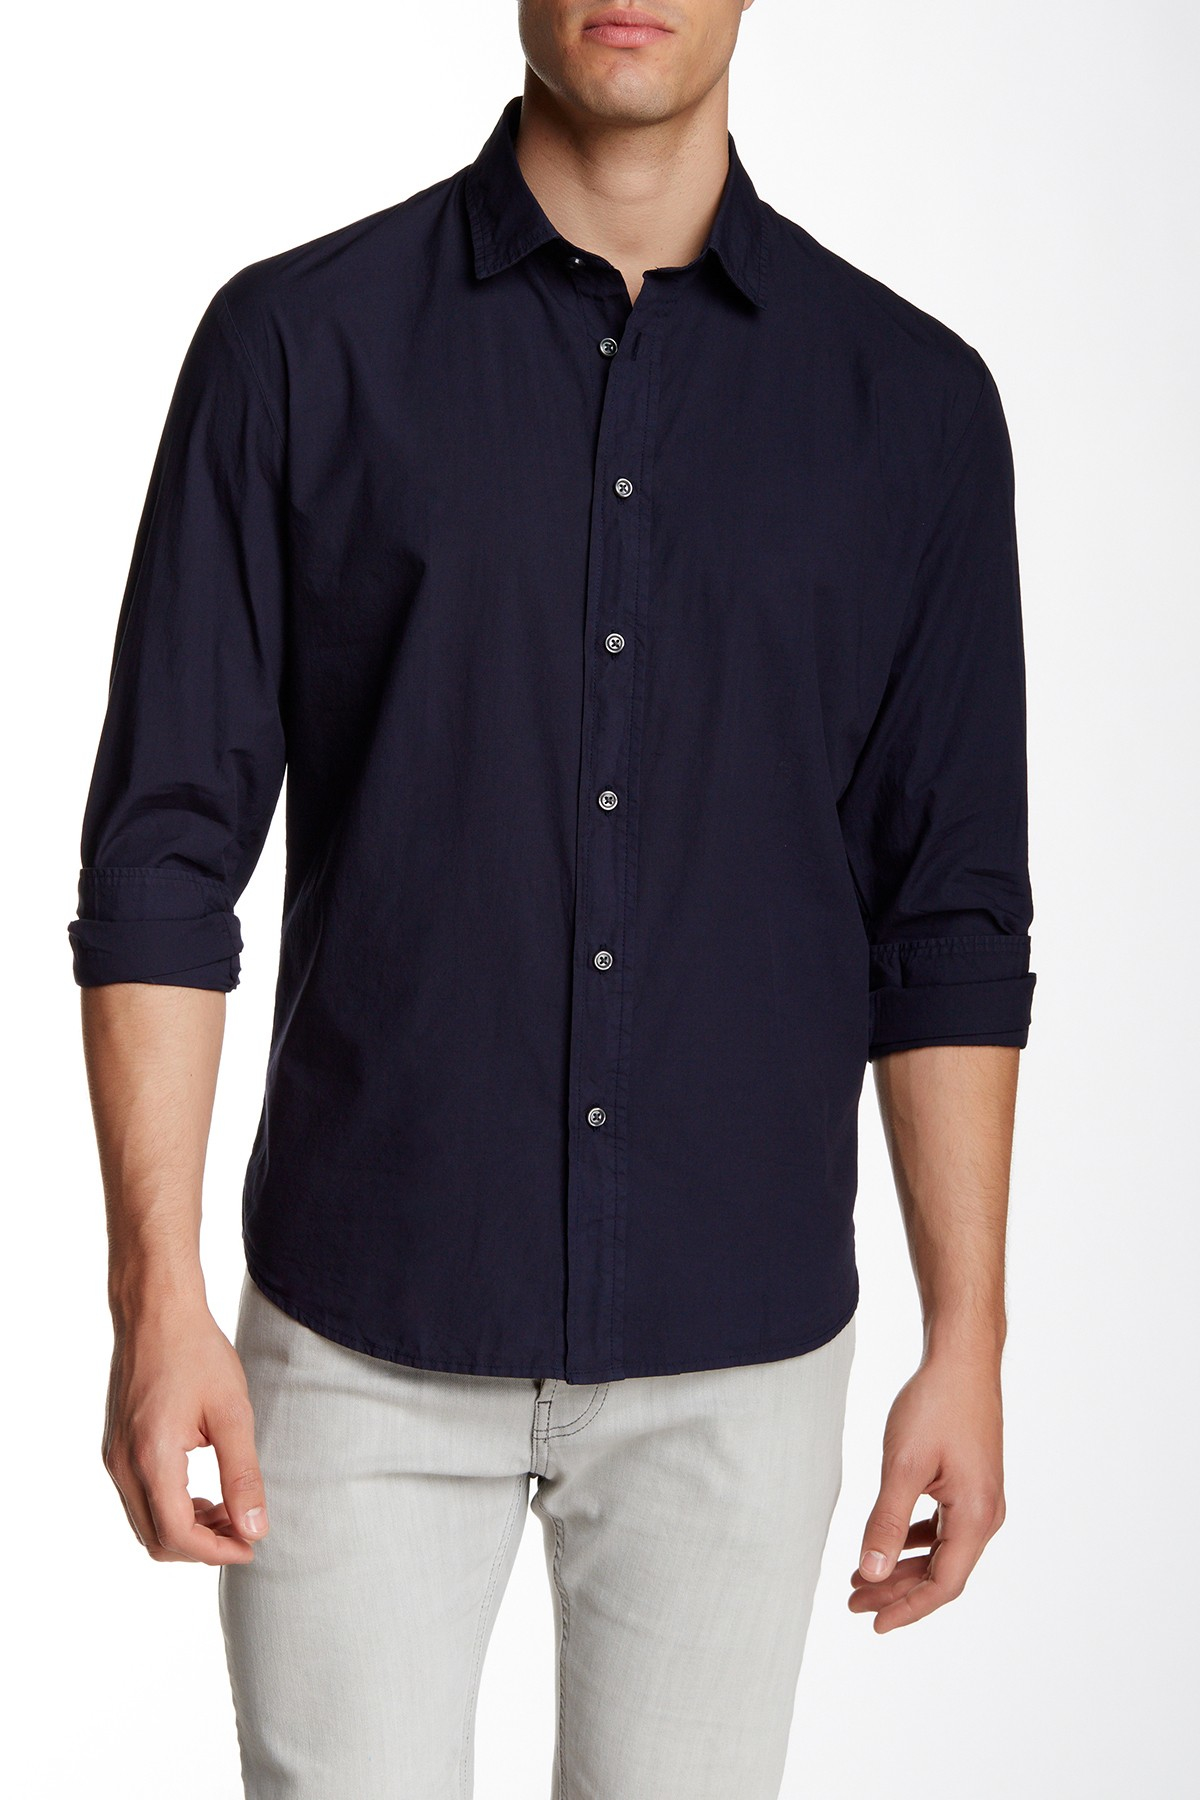 Slate And Stone Clothing : Lyst slate stone adrian micro check regular fit shirt